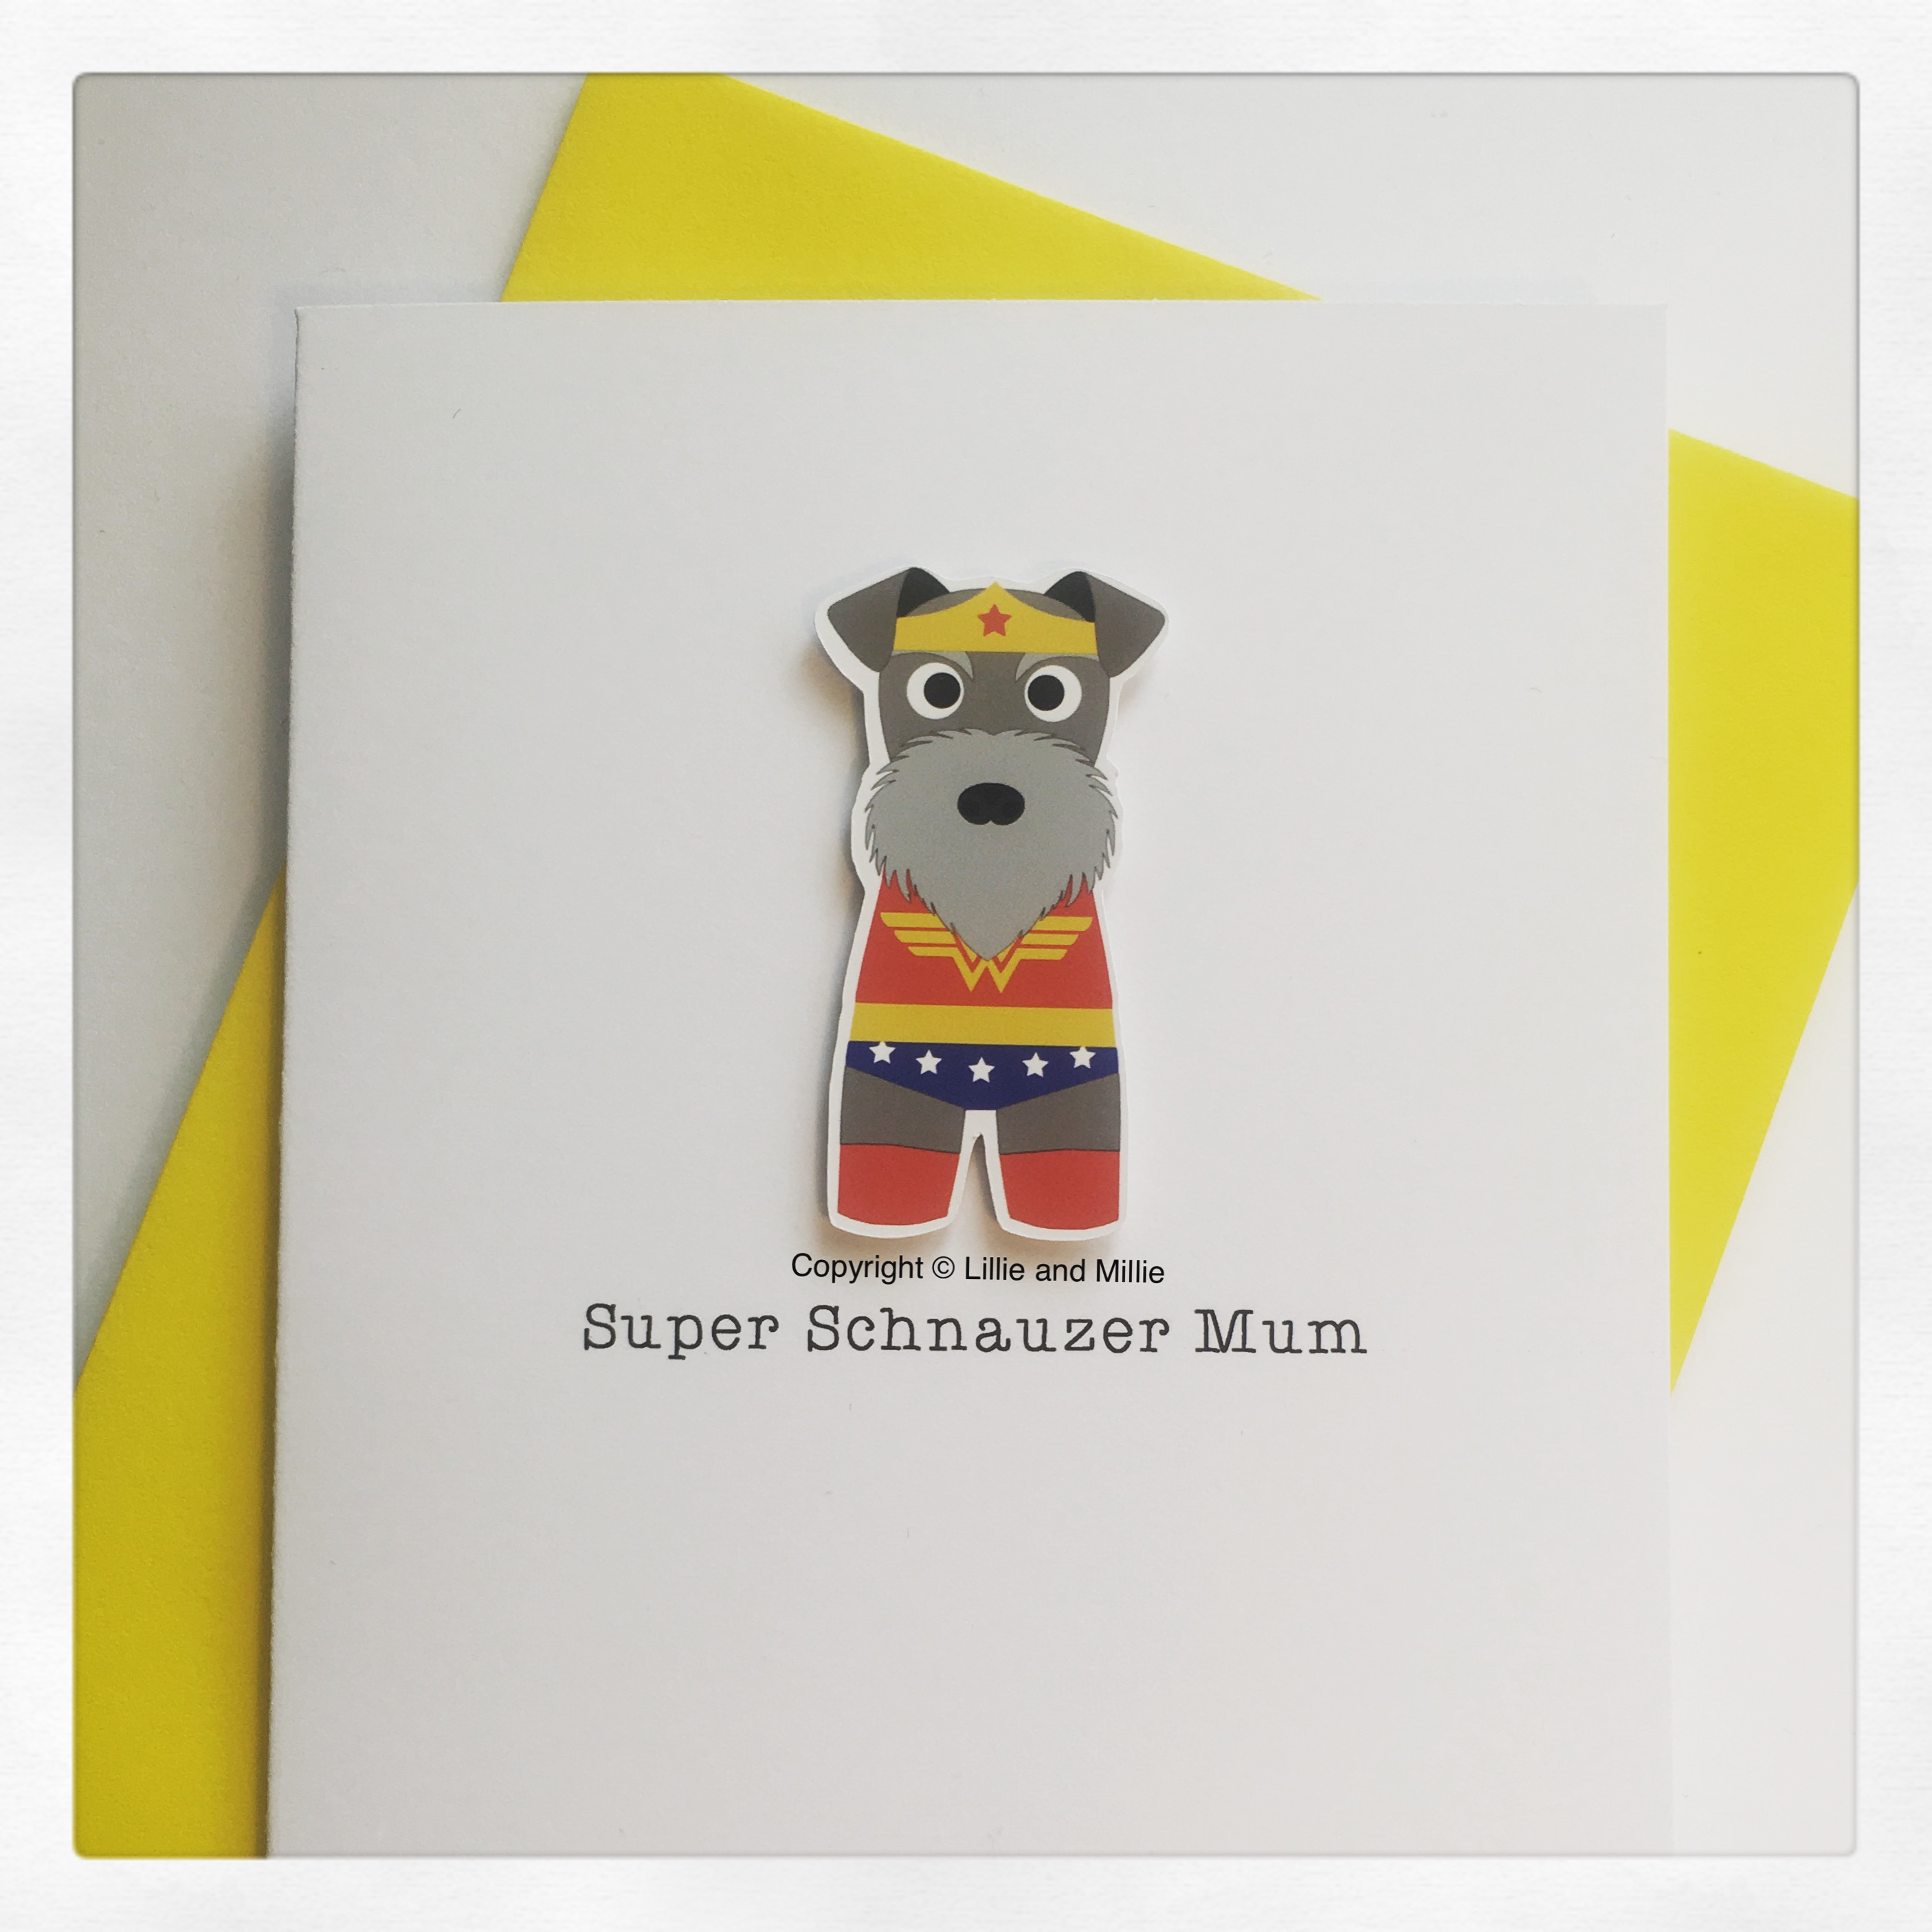 Cute and Cuddly Salt and Pepper Schnauzer Mum Wonder Woman Card